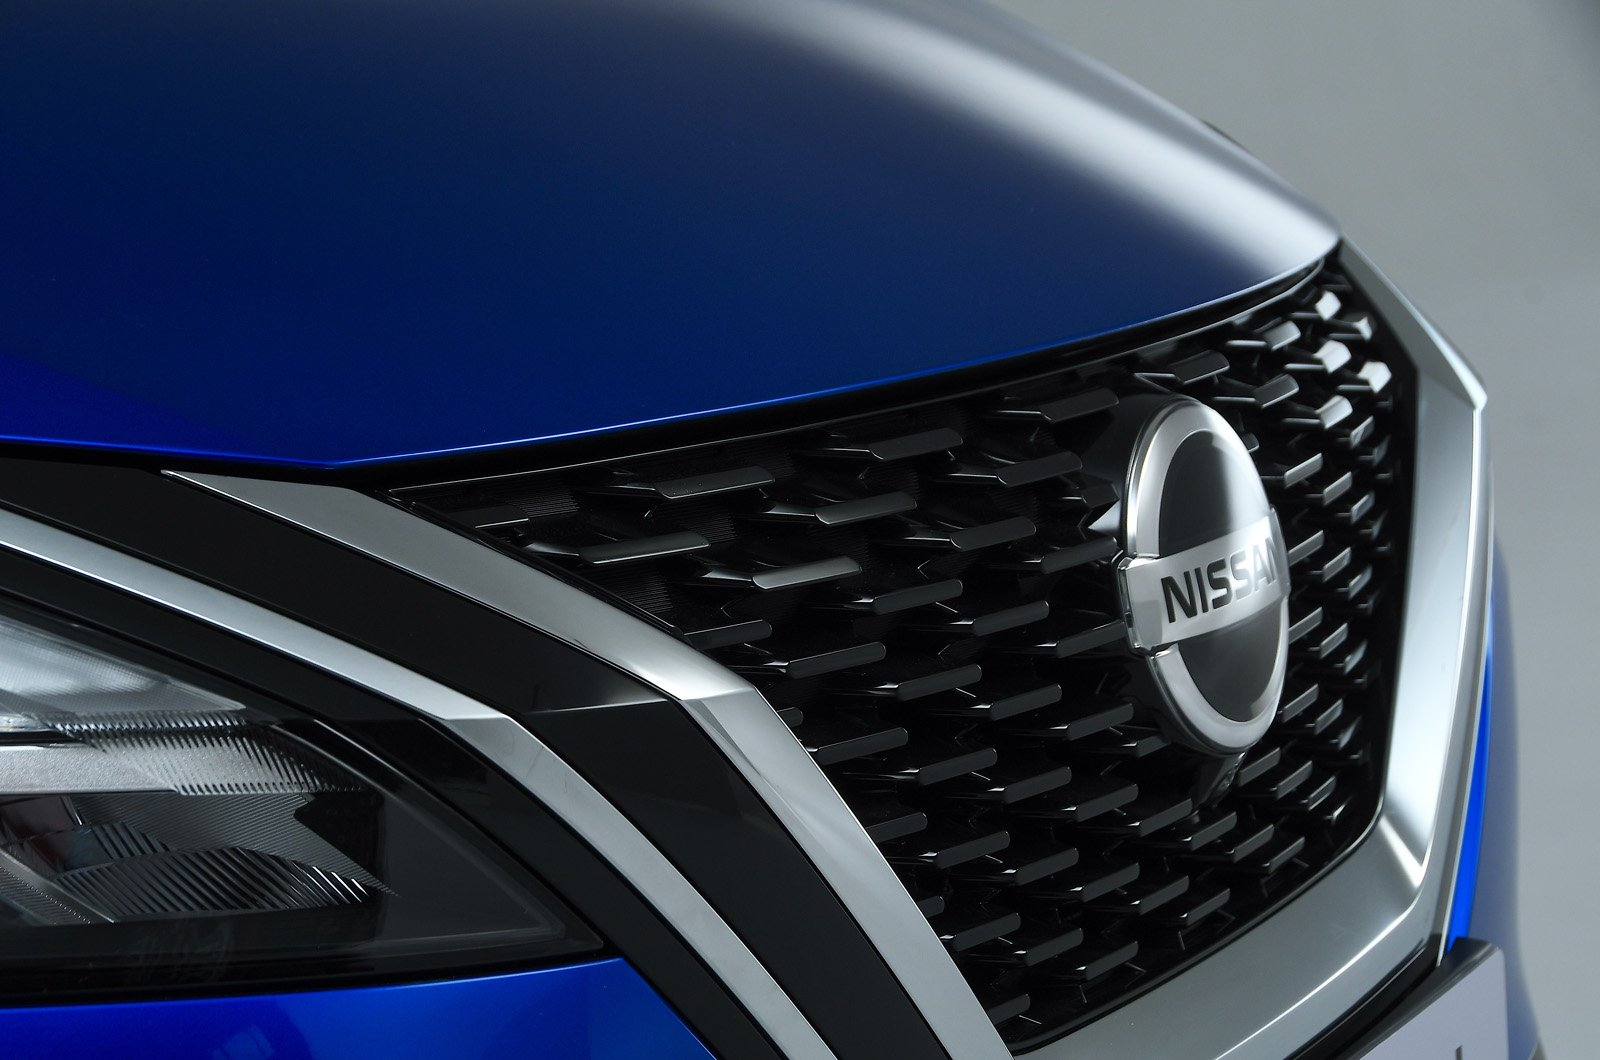 Nissan Qashqai 2021 front grille